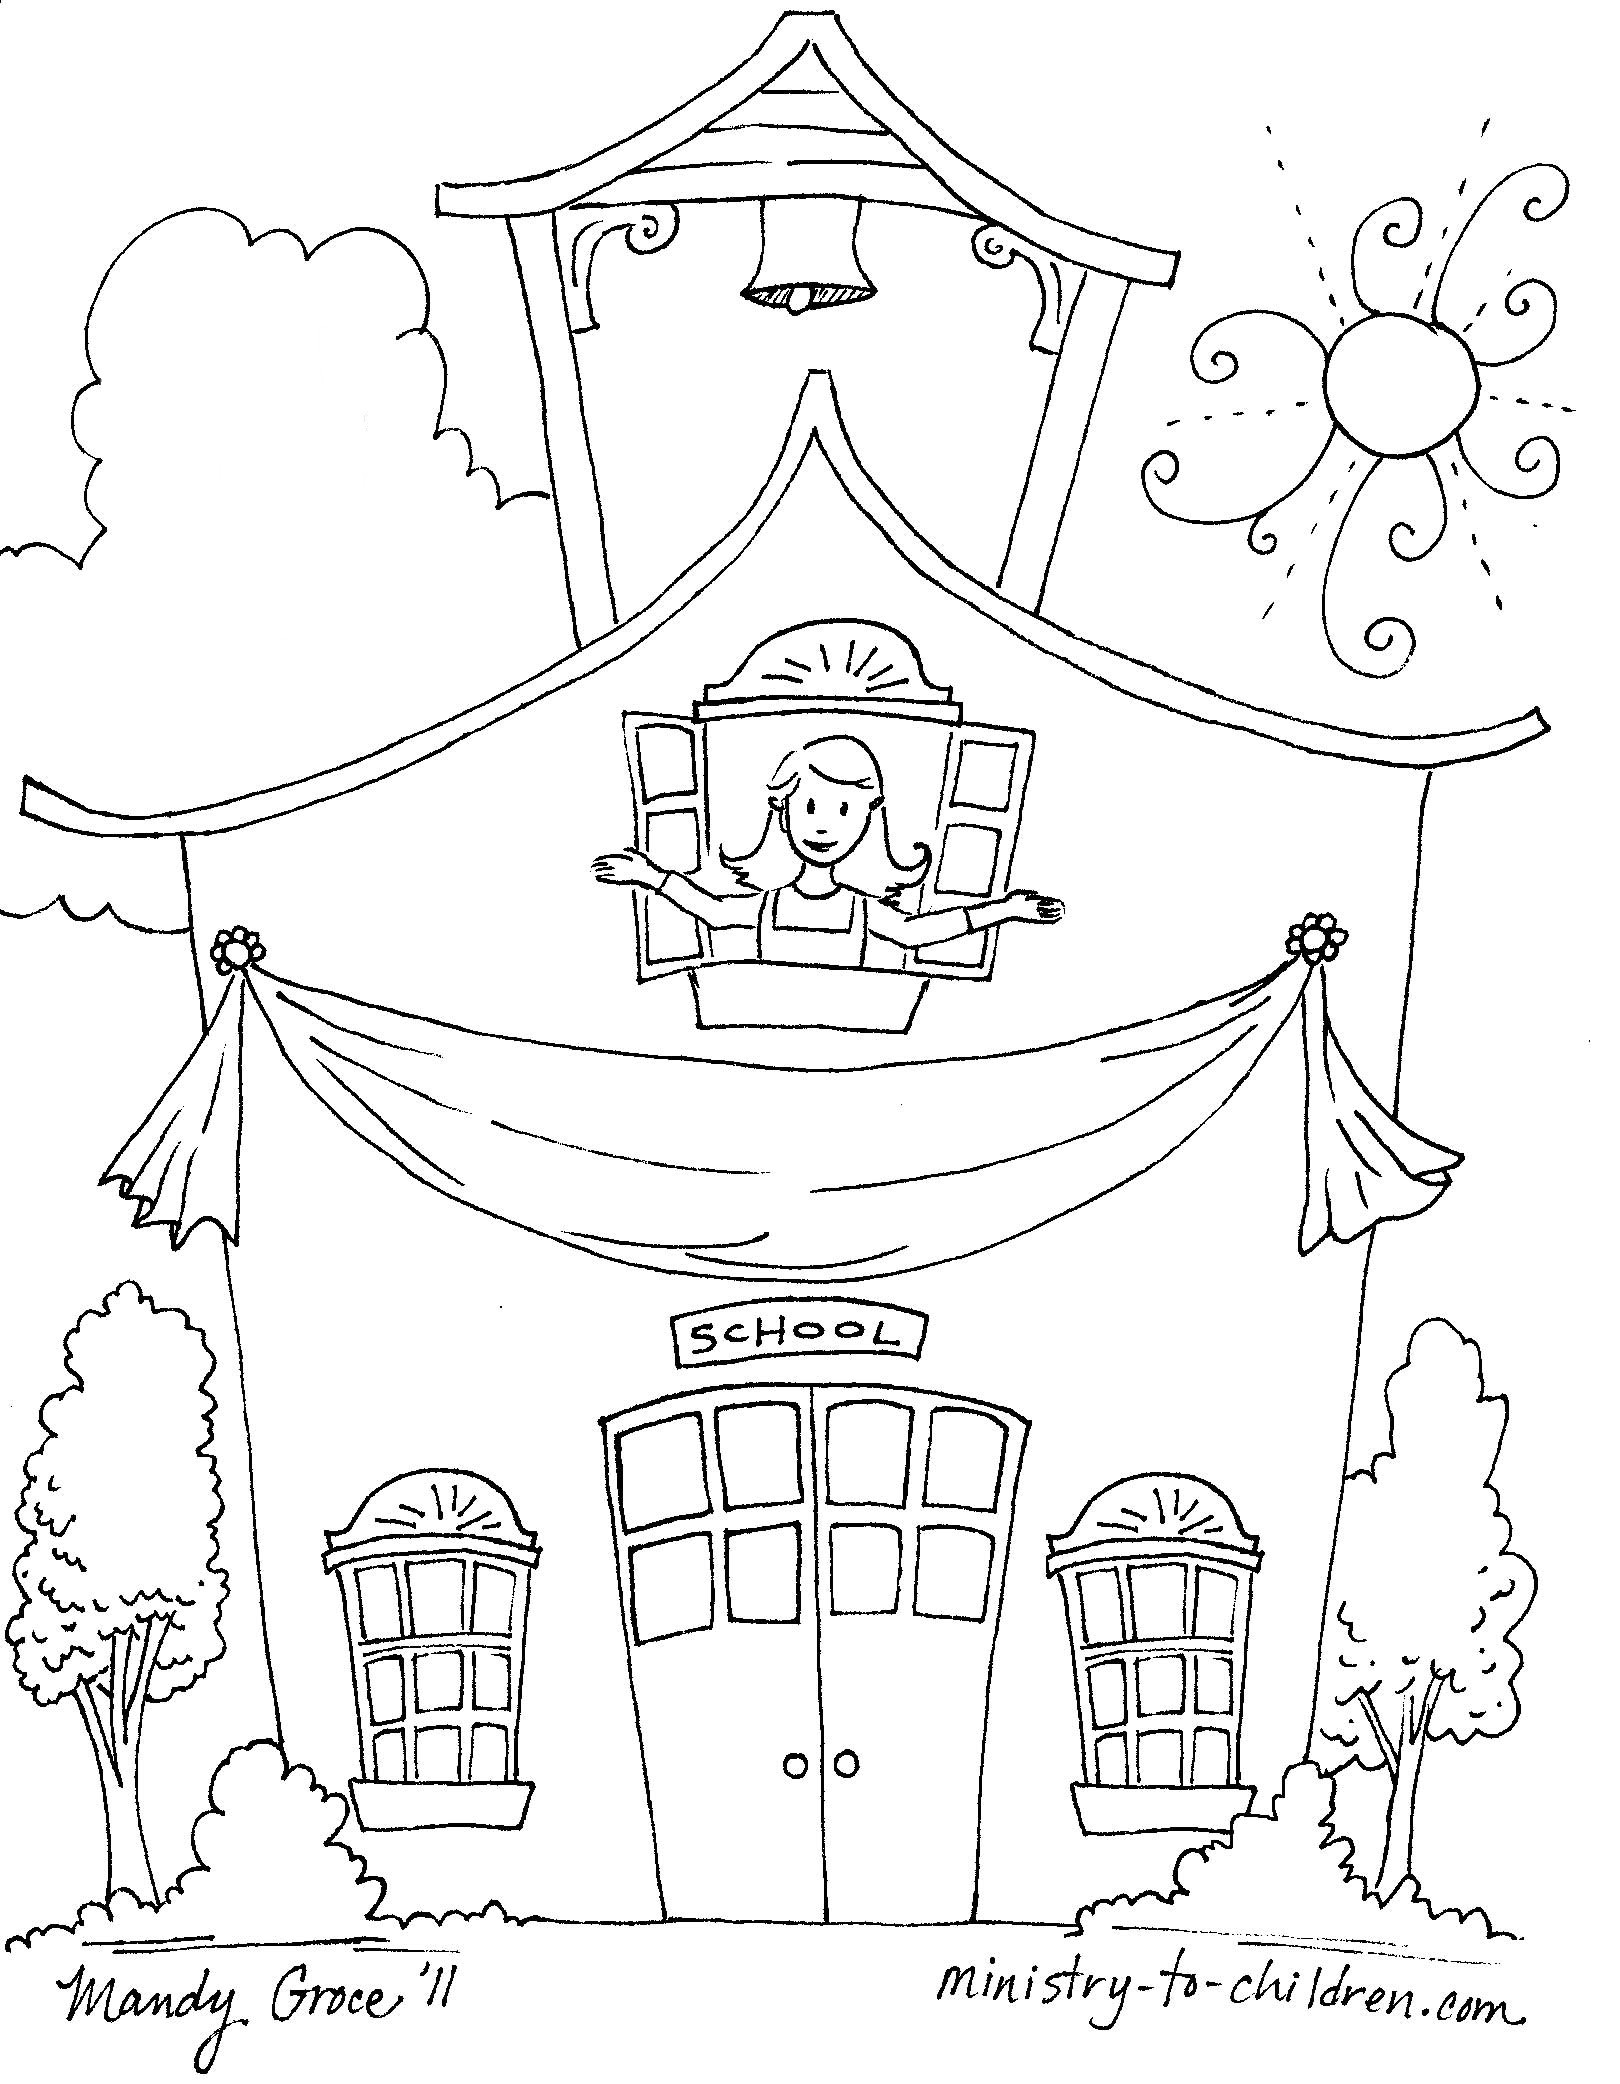 Simple School House Coloring Pages Real Pictures Of Rudolph the Red ...